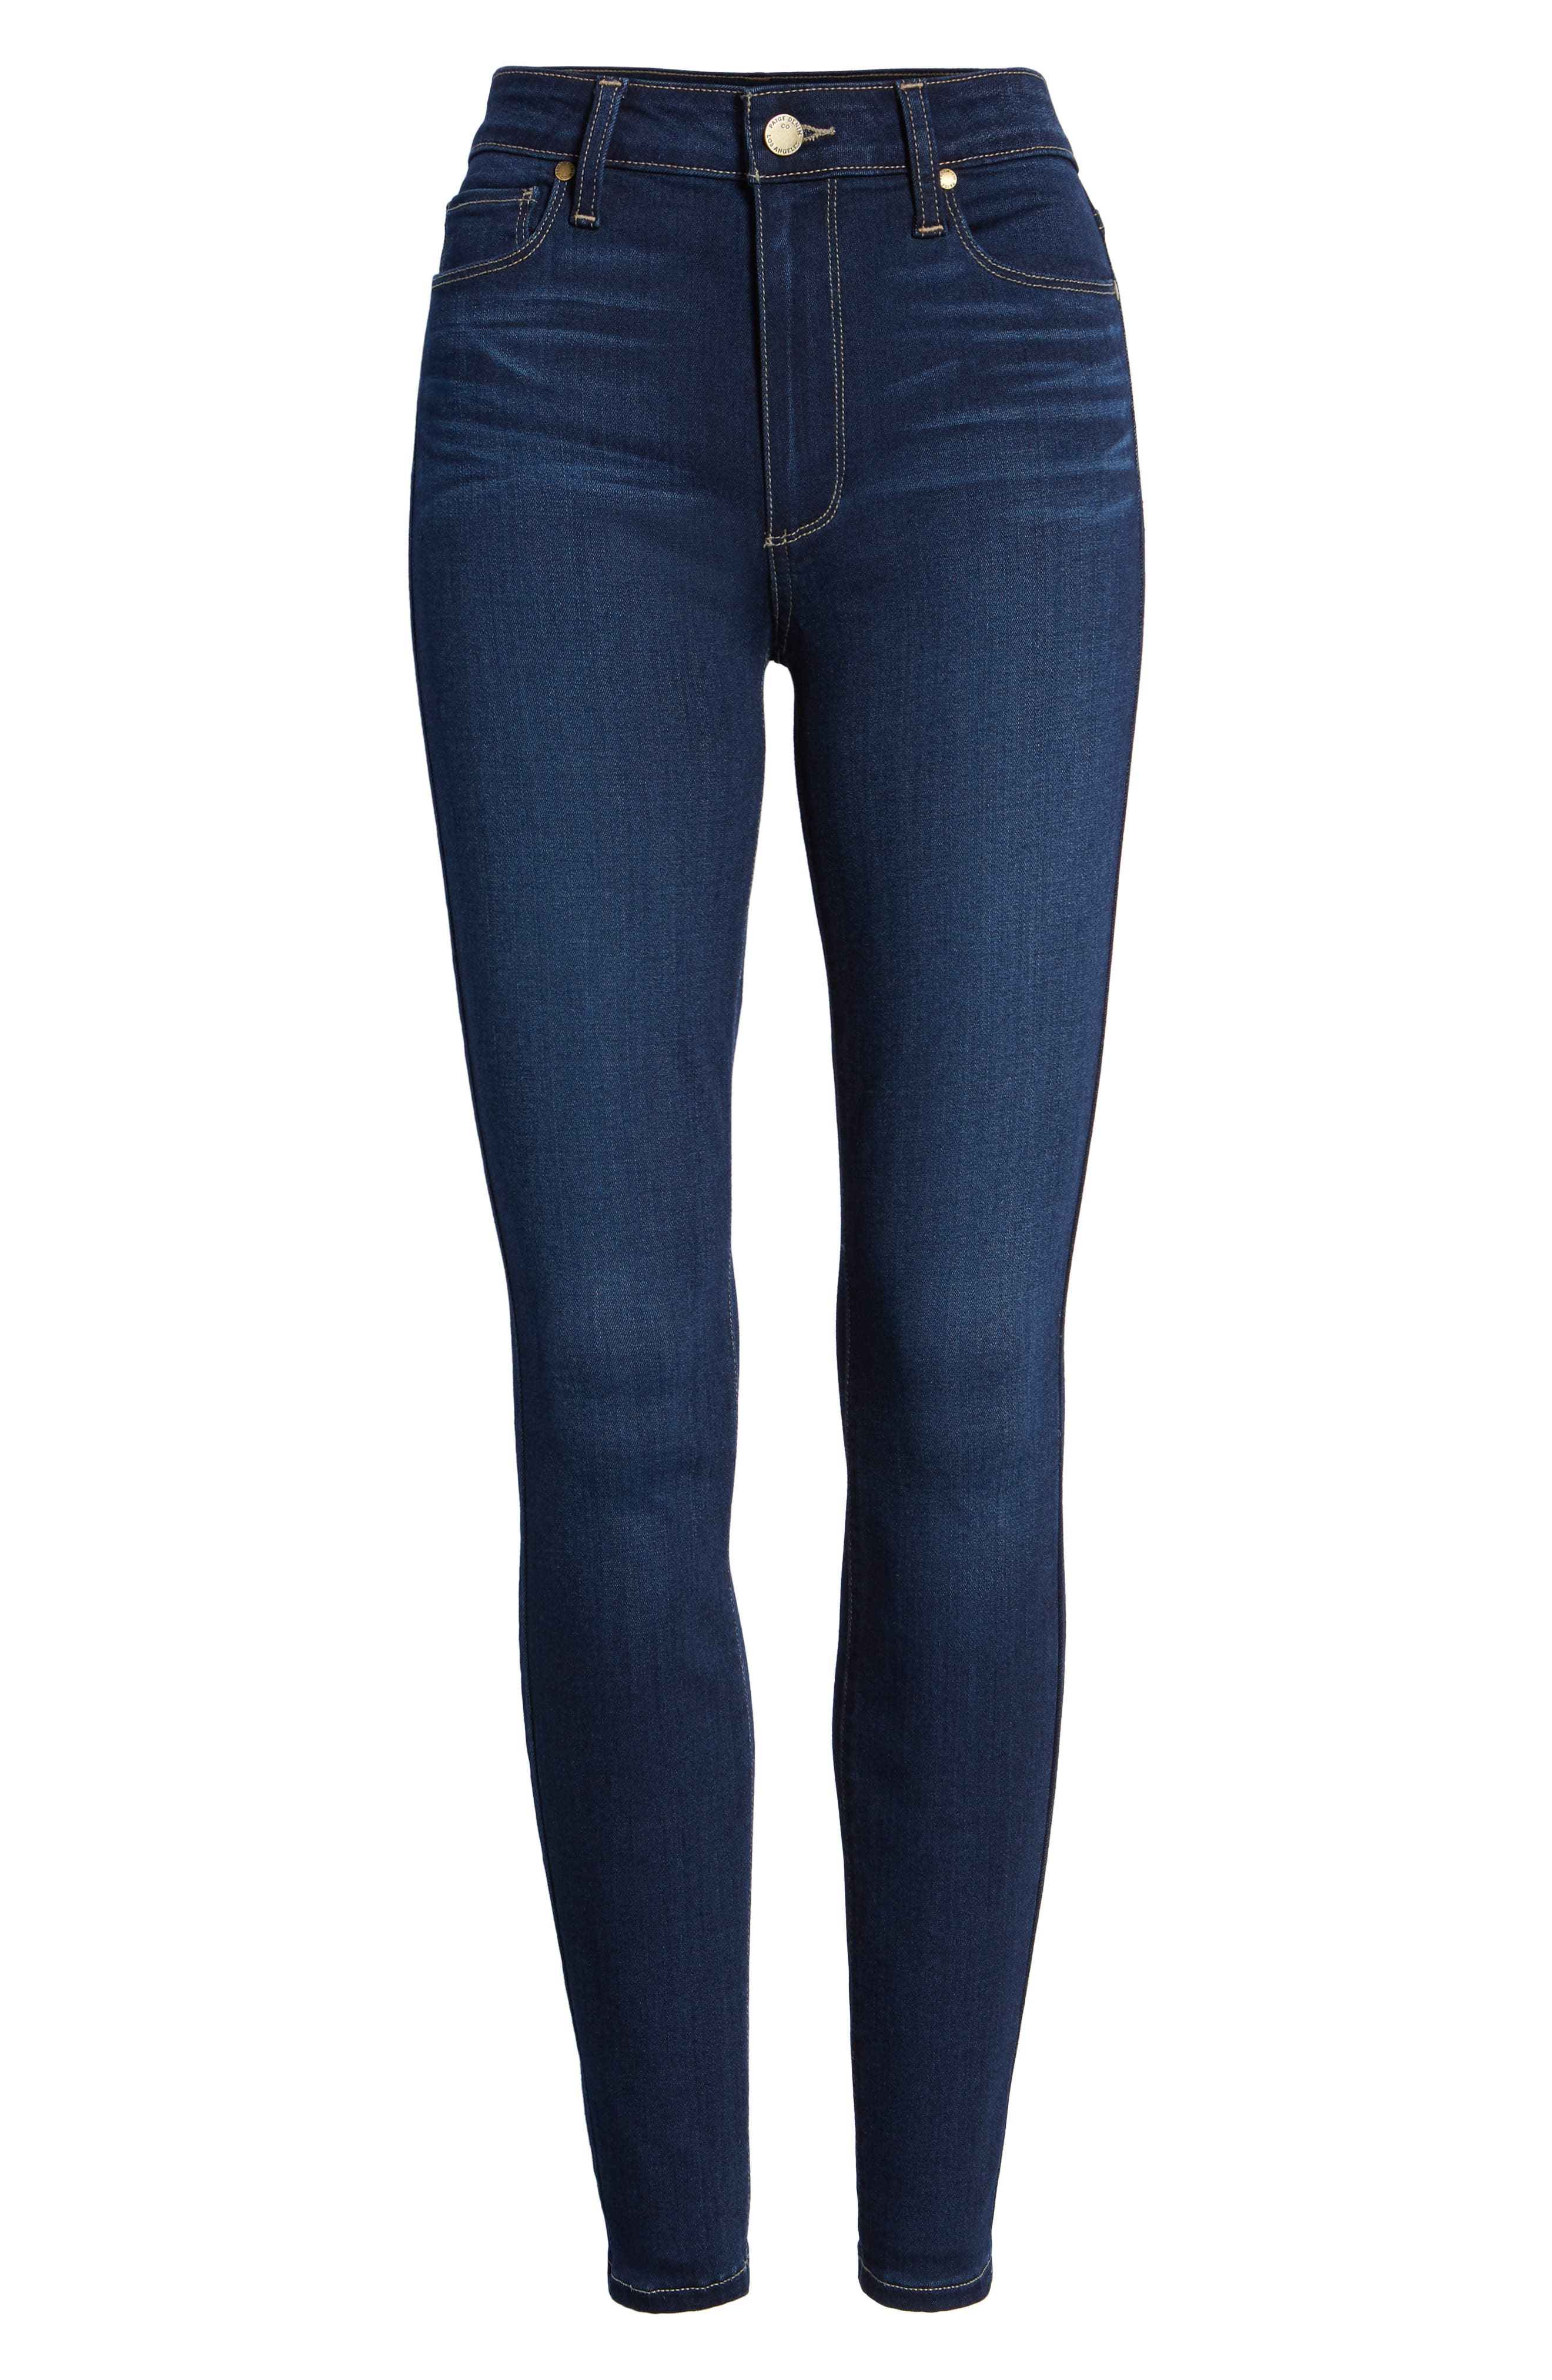 Hoxton High Waist Ankle Skinny Jeans,                             Alternate thumbnail 7, color,                             Calani